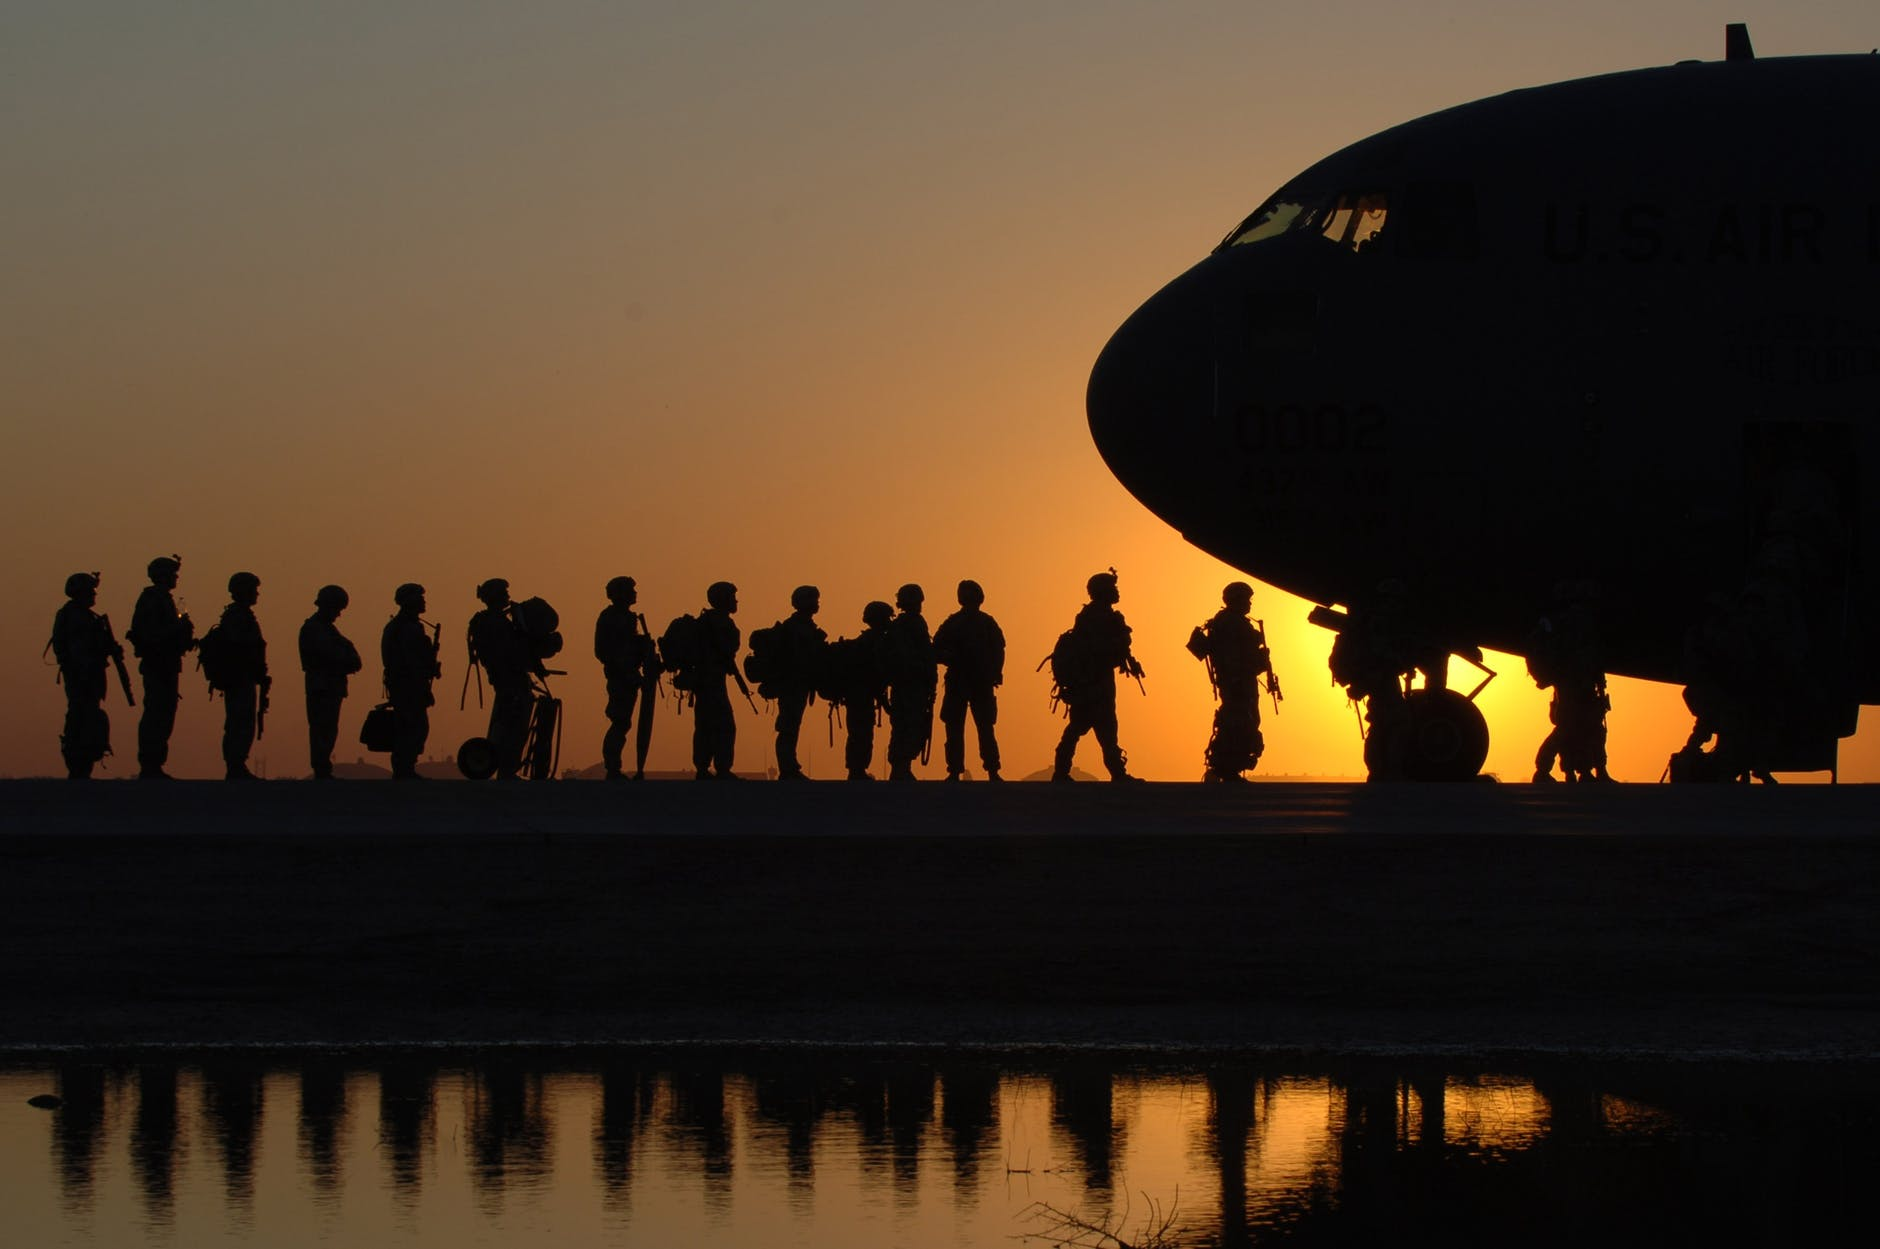 soldiers in line to get in a plane